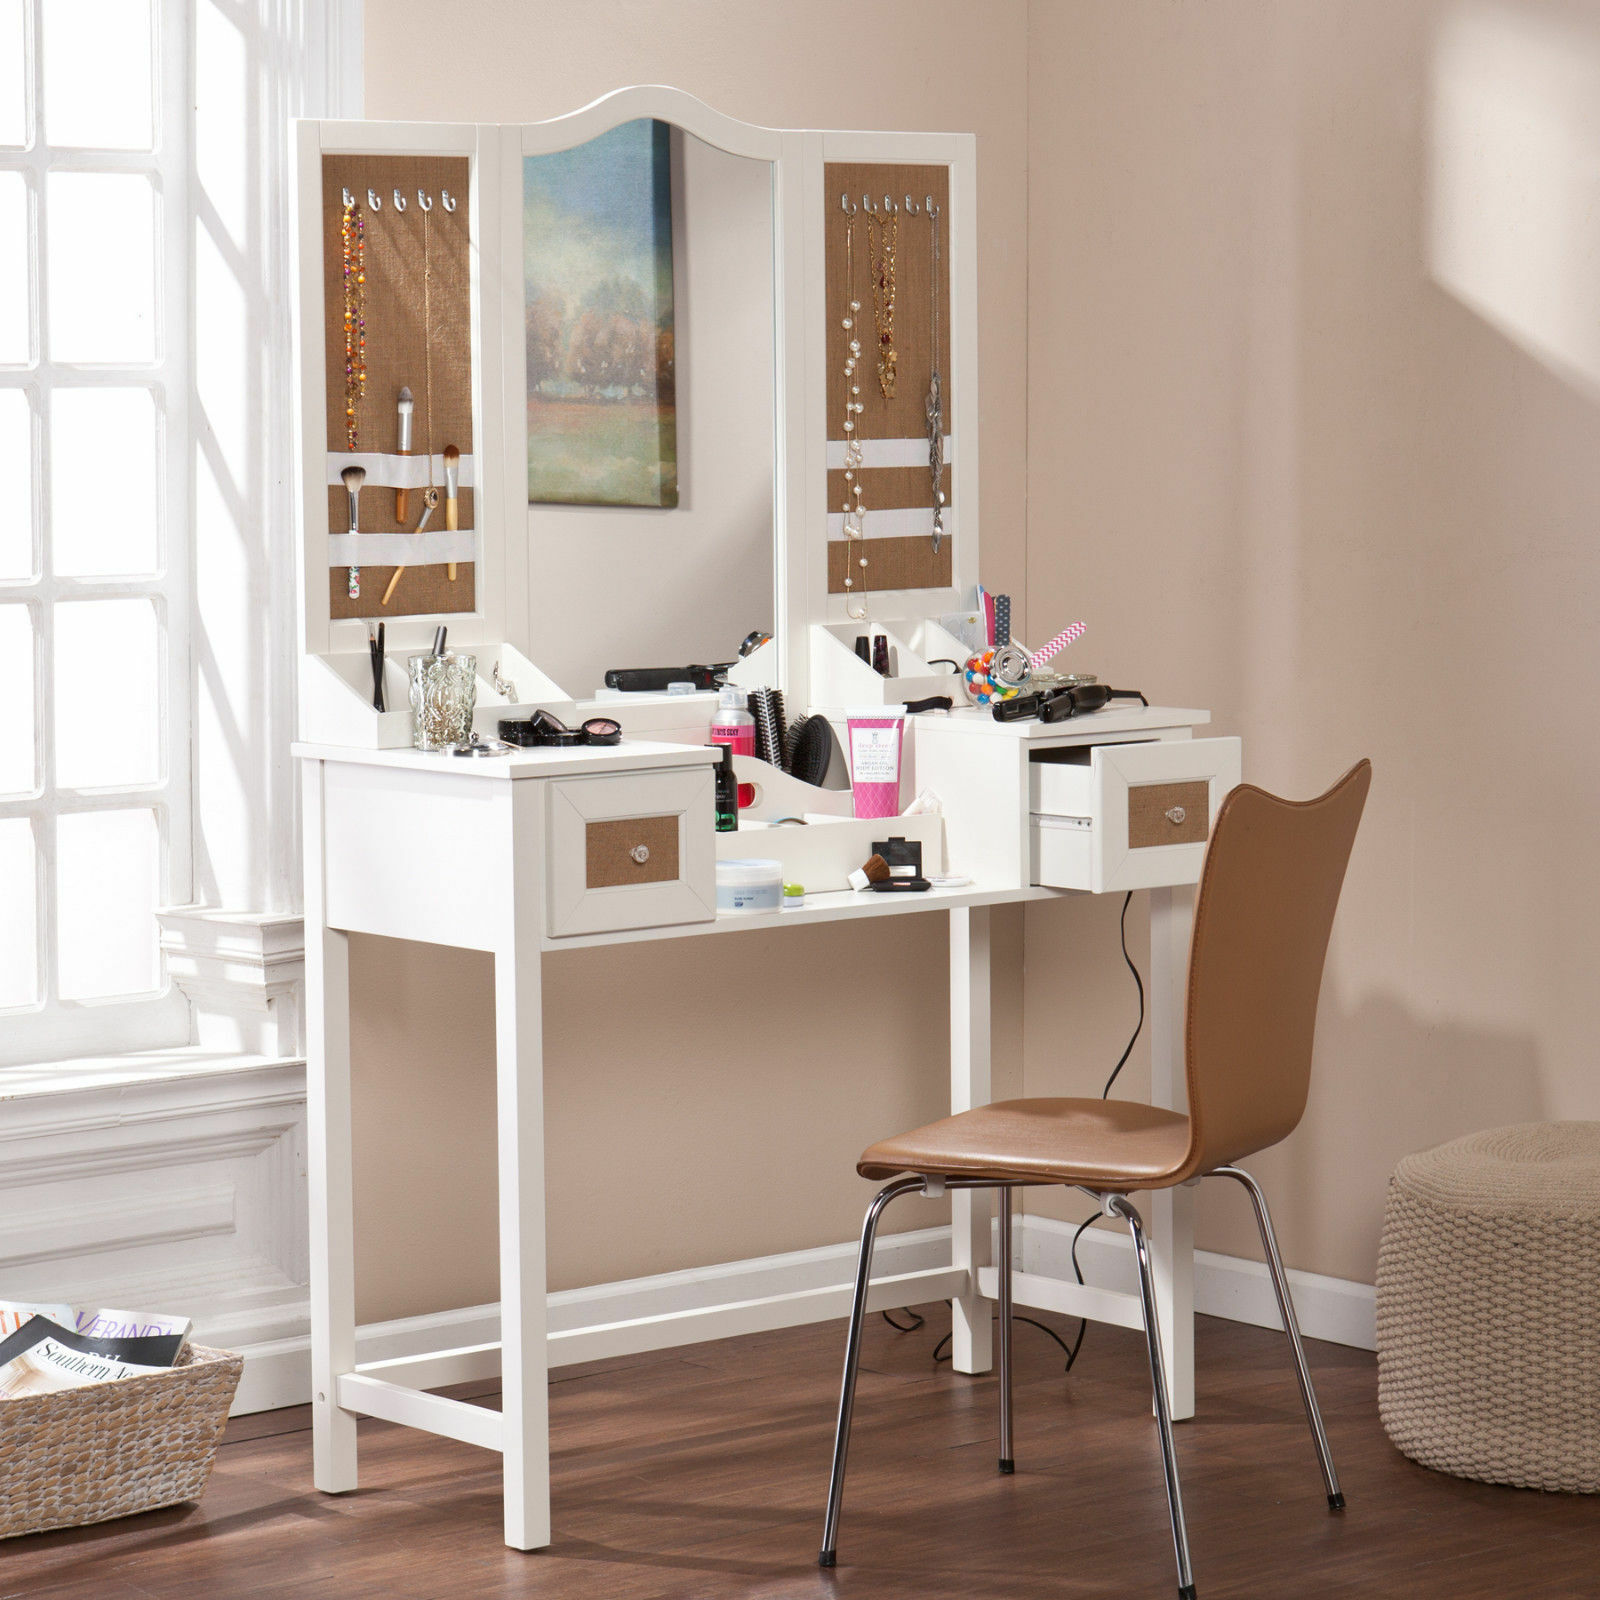 how to build a bedroom vanity ebay